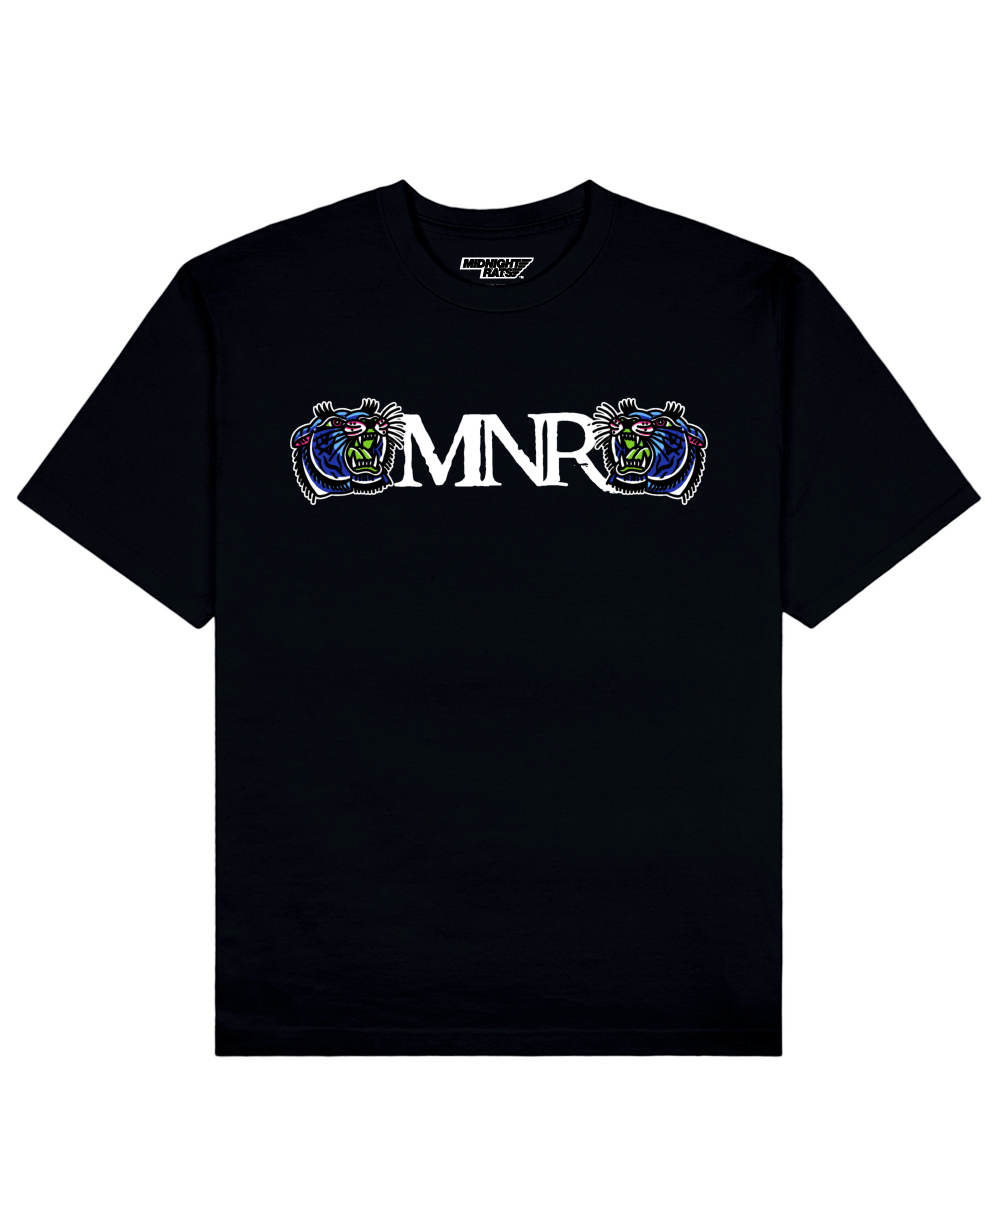 Signature MNR Print T-shirt in Black - T-Shirts - MIDNIGHT RATS - BRANMA